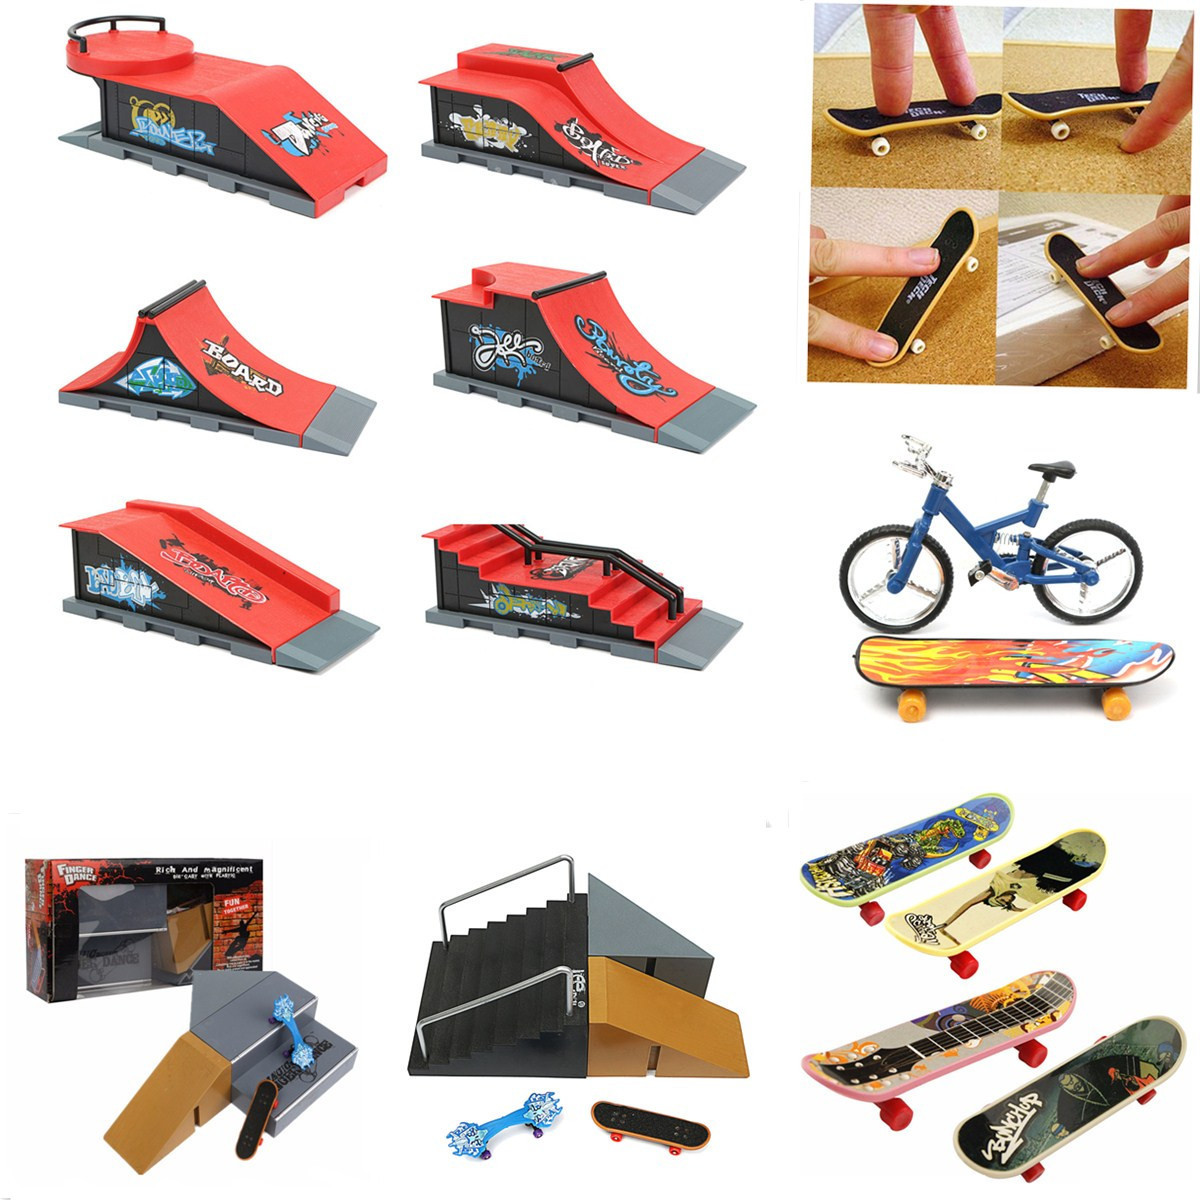 1PC Kids Children Mini Finger Board Fingerboard Skate Boarding Toys Gifts Creative DIY Handicraft